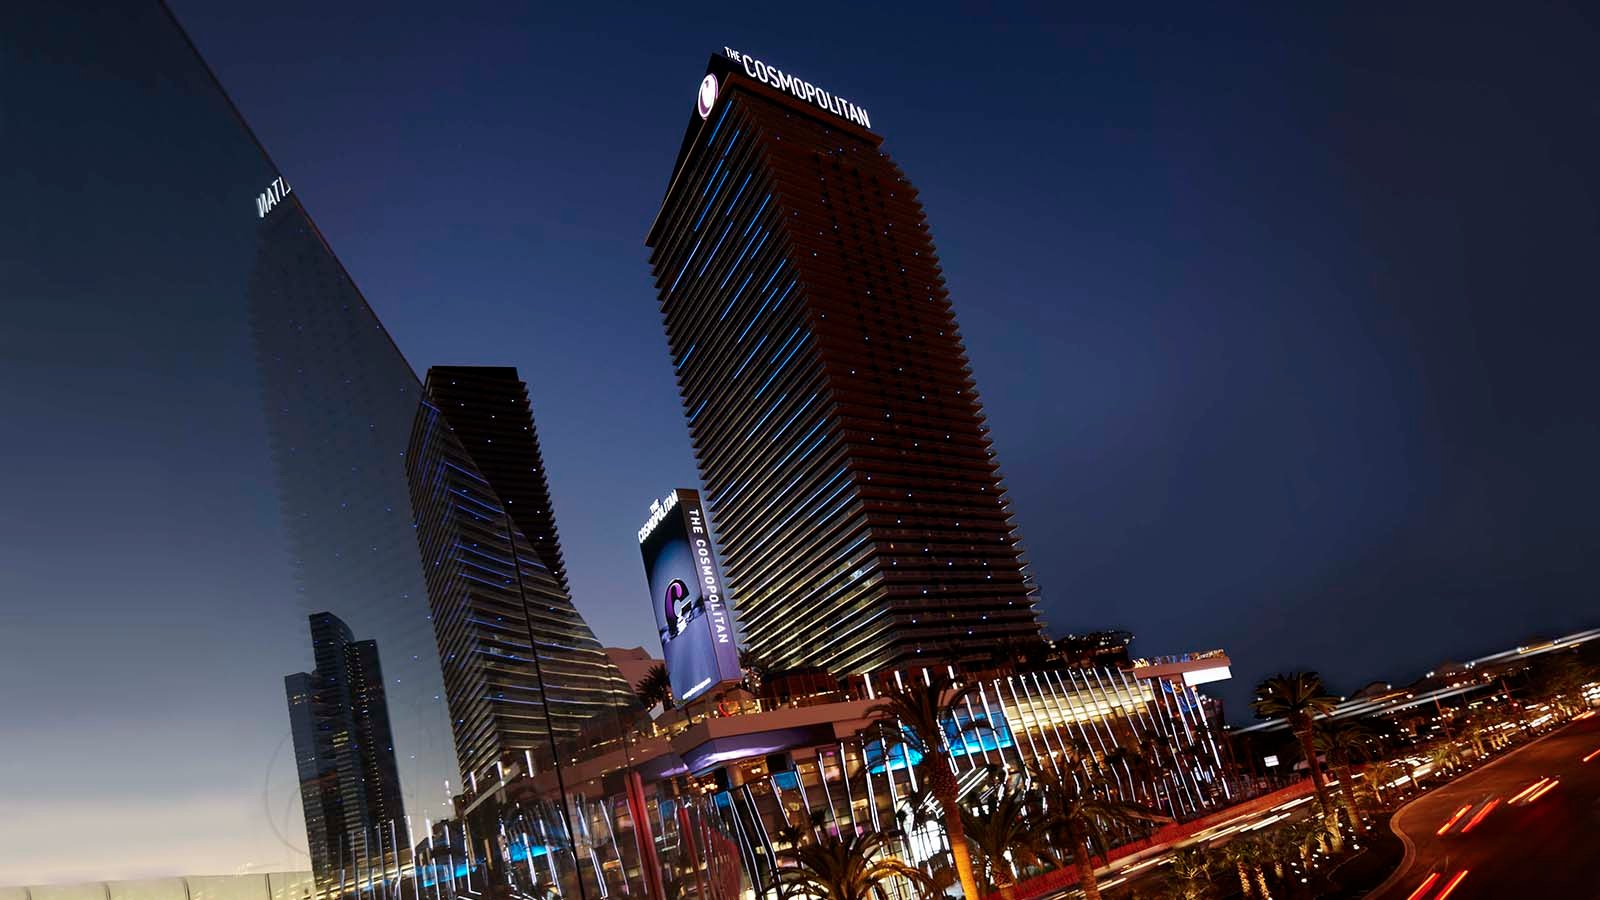 aria las vegas map with Hotel Review G45963 D1829539 Reviews The Cosmopolitan Of Las Vegas Autograph Collection Las Vegas Nevada on Attraction Review G45963 D1820858 Reviews Presidential Limousine Las Vegas Nevada together with Encore At Wynn Las Vegas Hlp furthermore 2643 also Pool furthermore Return Theme Resorts World Themed Hotel China.